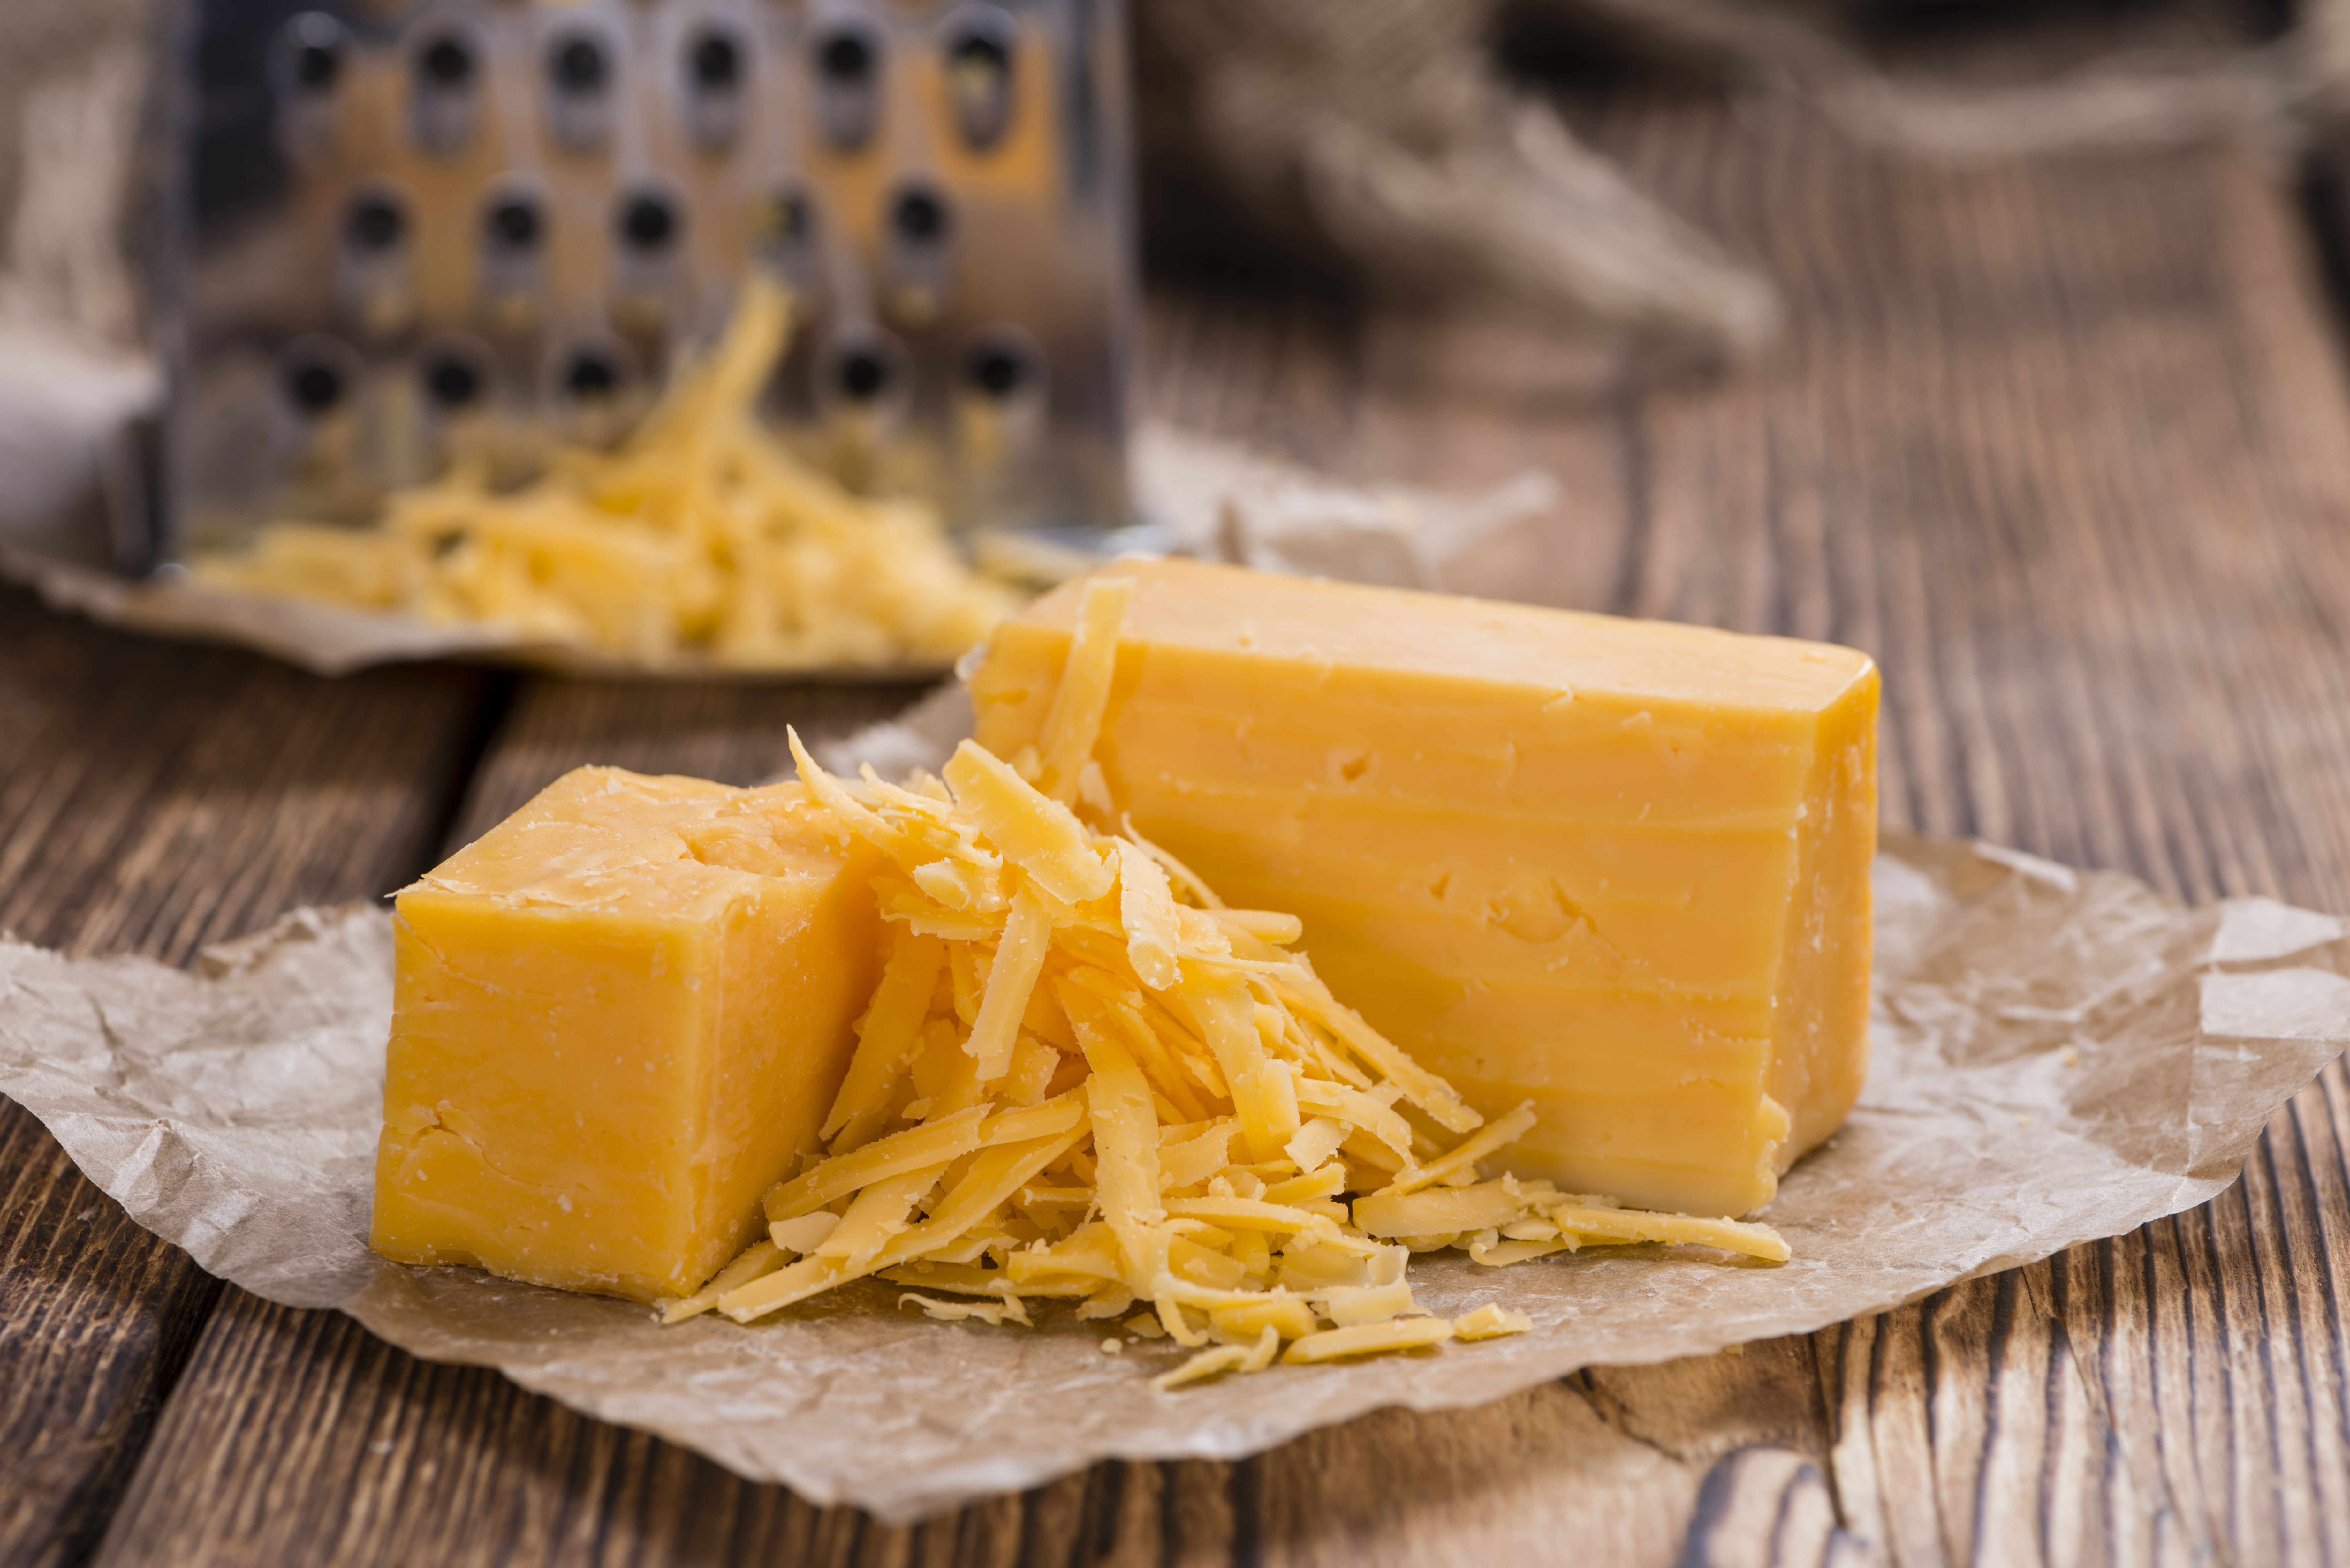 America now has 1.2 billion pounds of excess cheese — and nowhere to put it